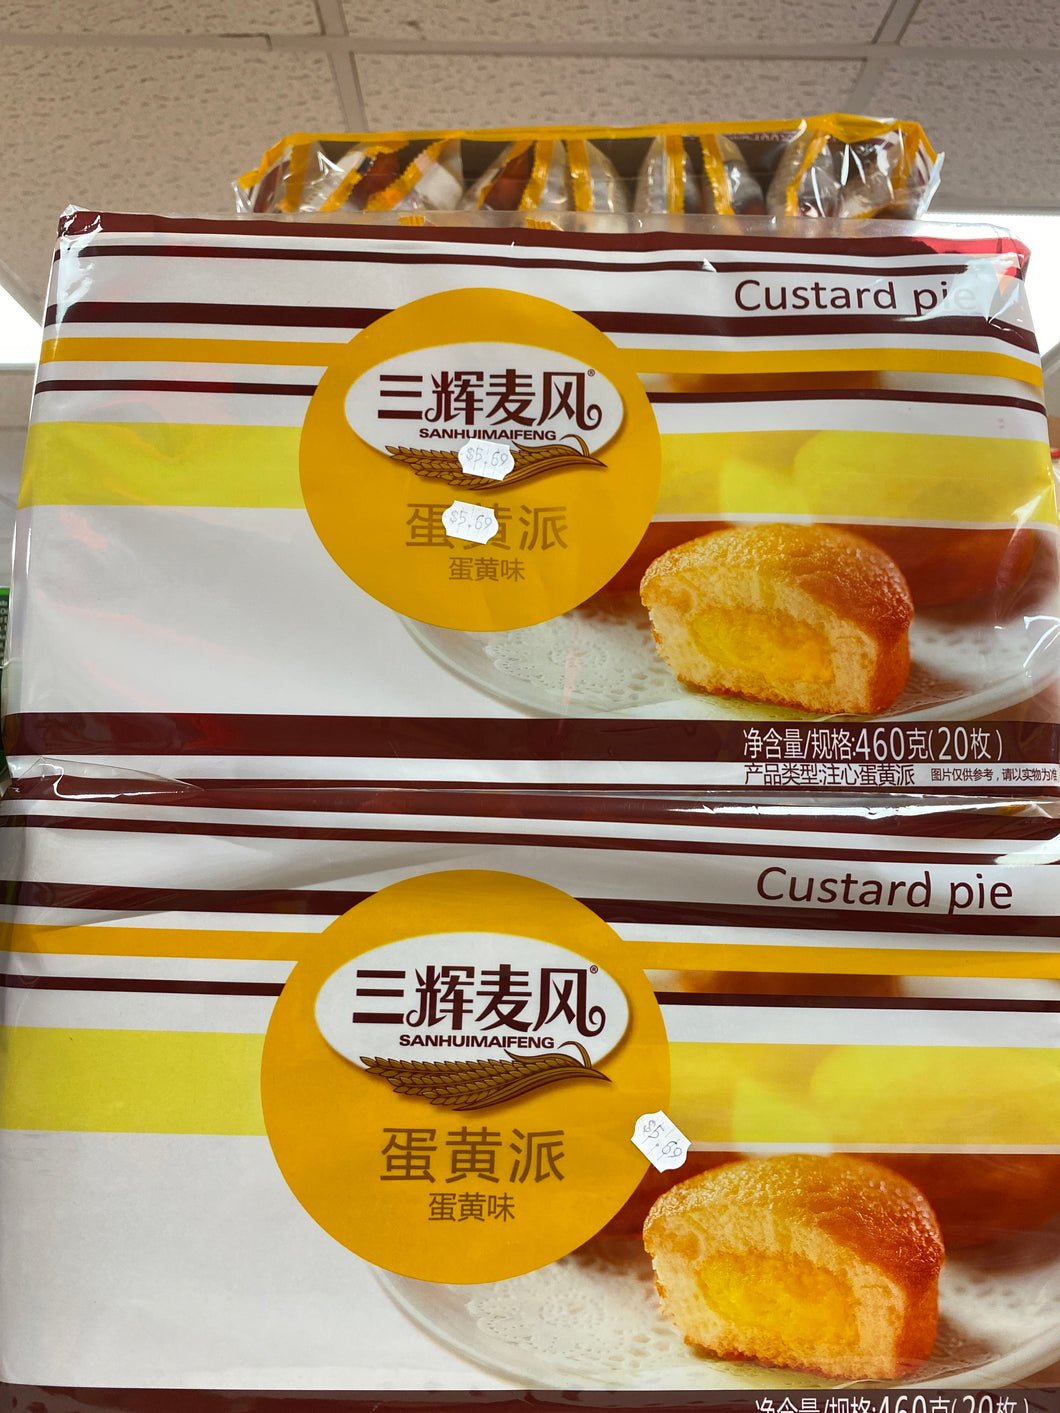 三辉麦风蛋黄派 SANHUIMAIFENG CUSTARD PIE 20PCS